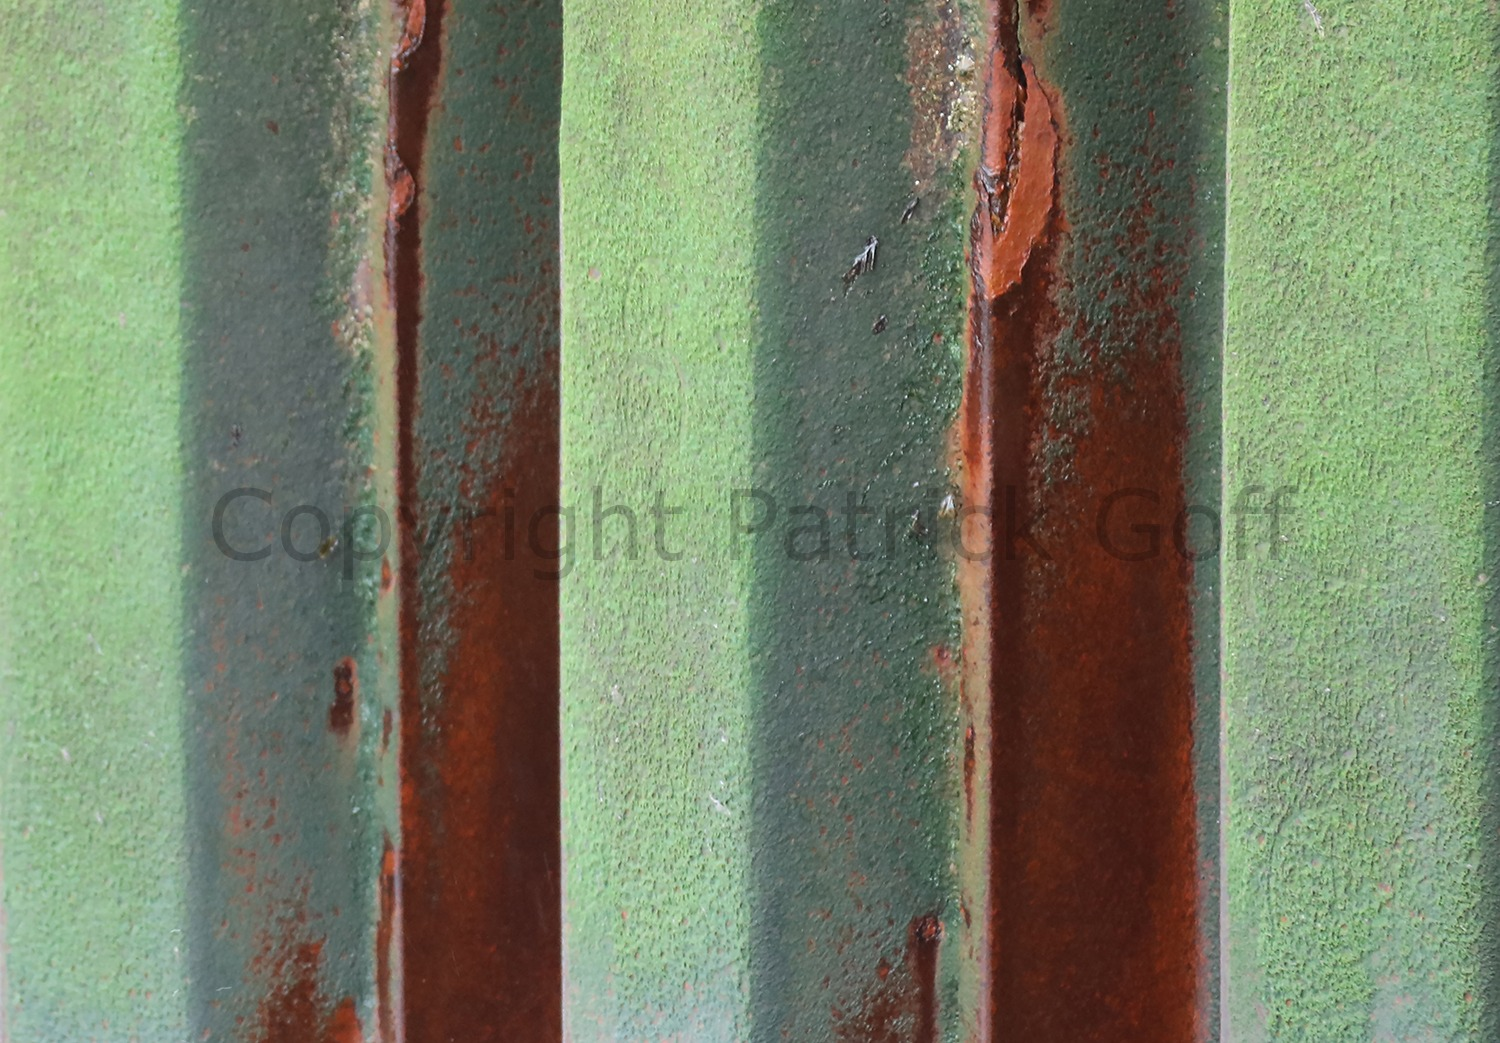 Art work produced directly from teh photograph. A2 size detail of an image, part of the 'Sea' series inteh gallery here